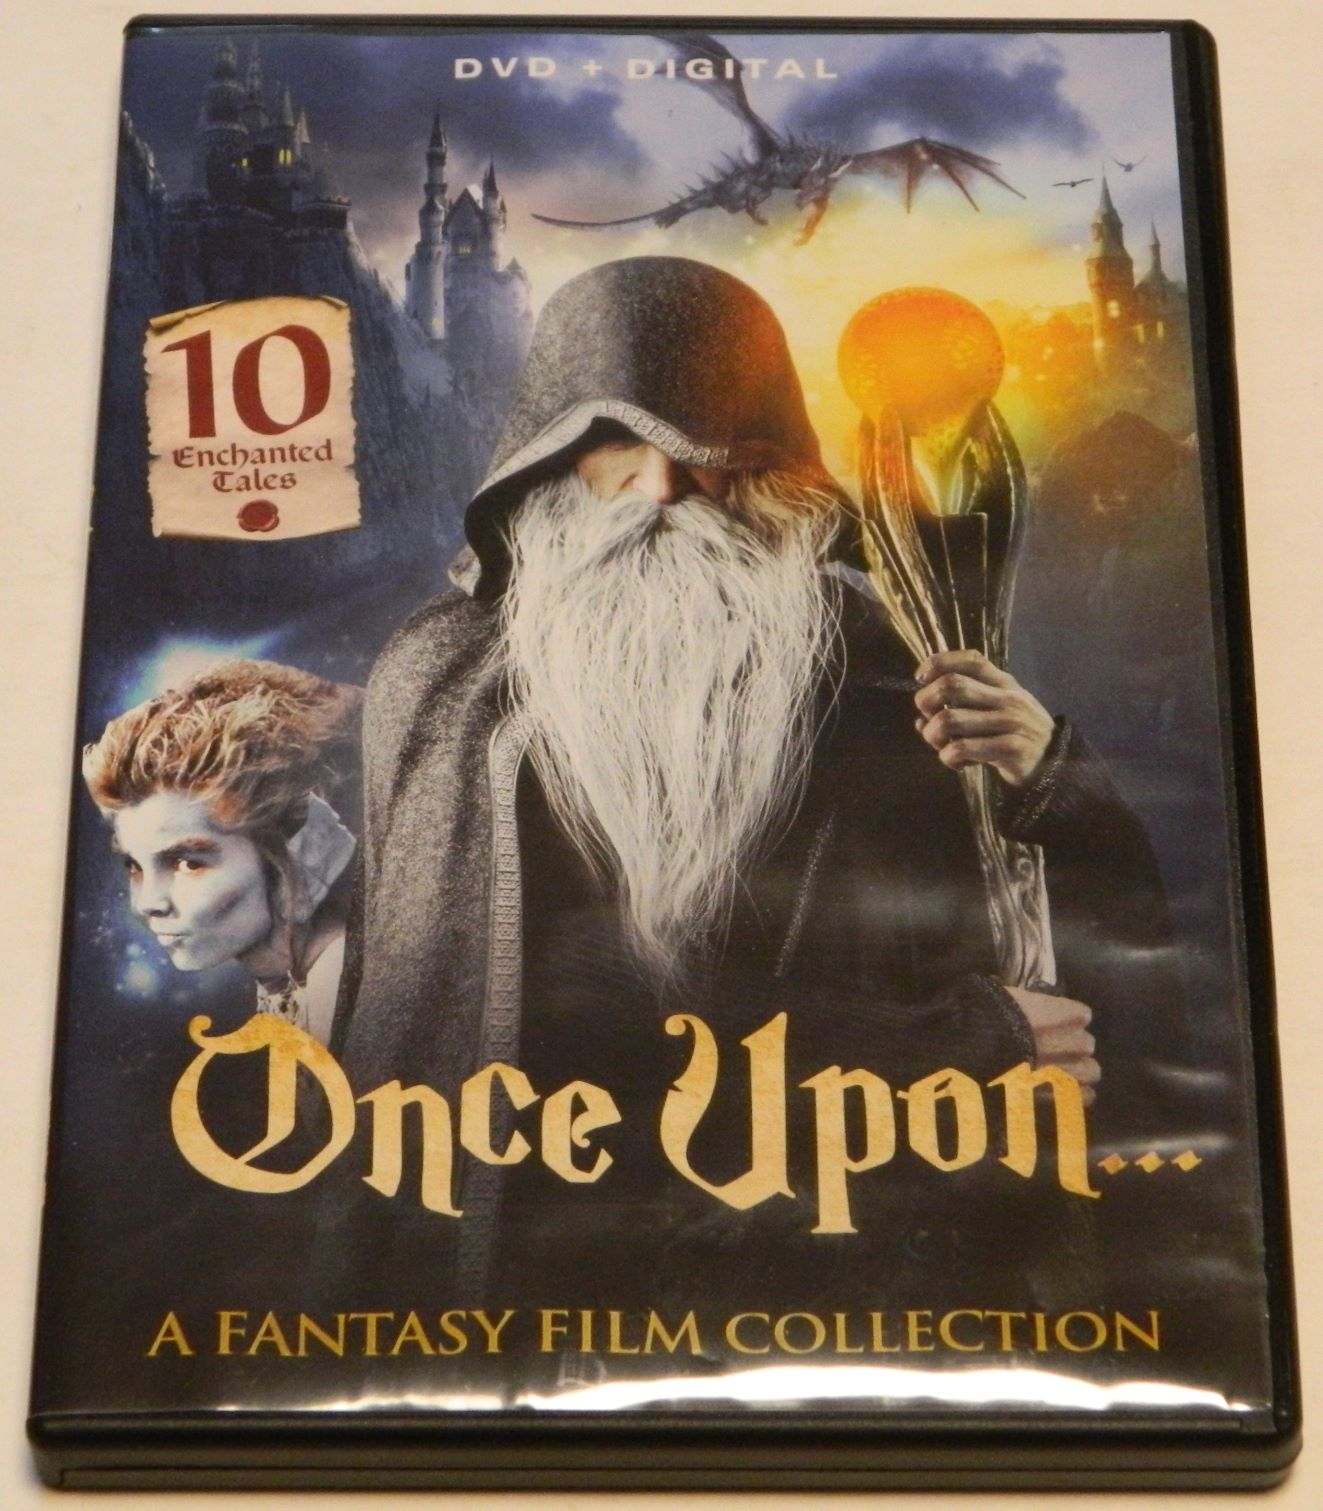 Once Upon A Fantasy Film Collection DVD